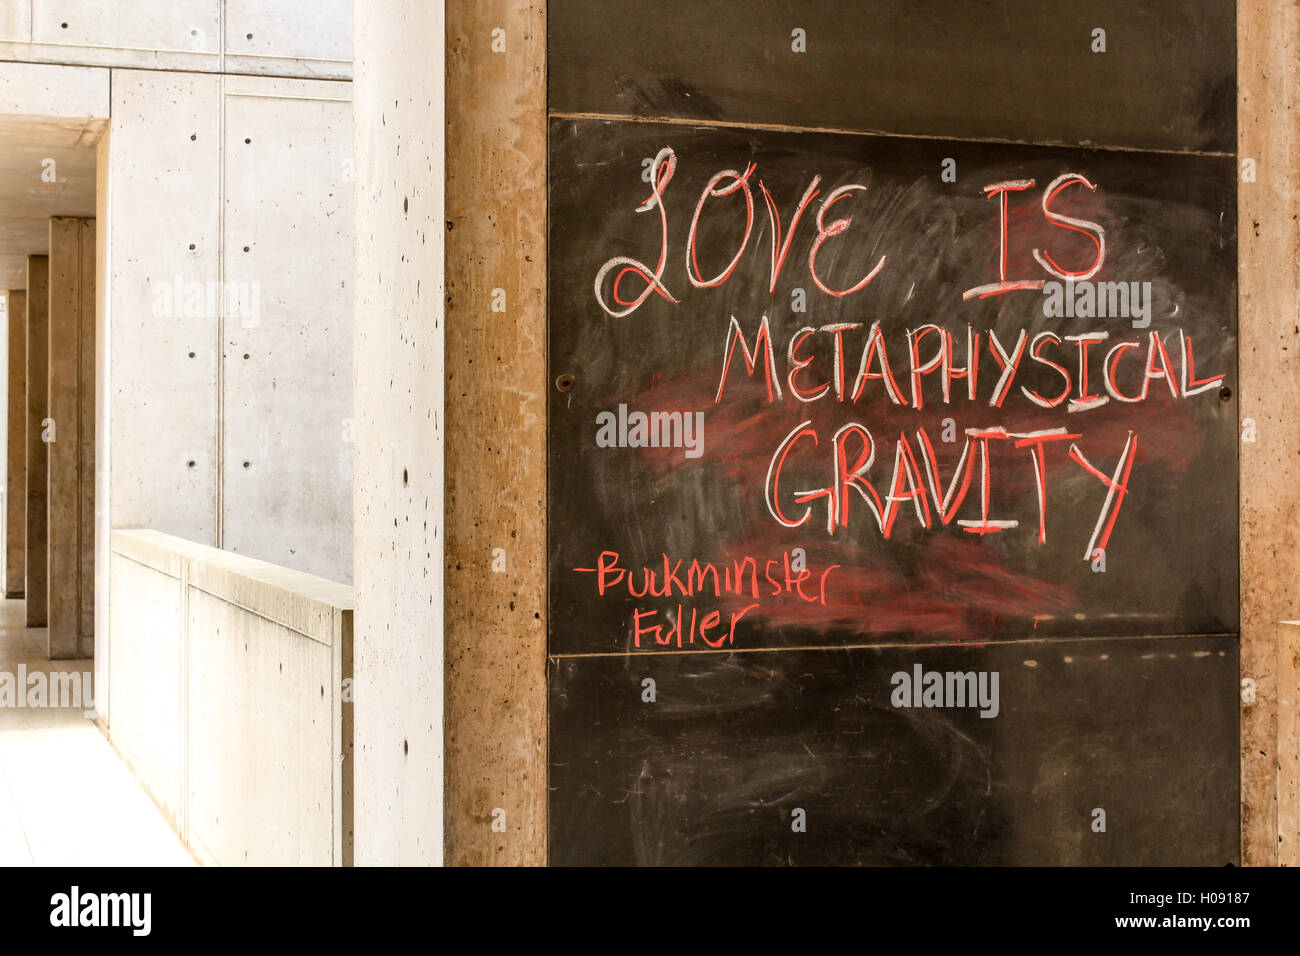 Quote: 'love is metaphysical gravity' by Buckminster Fuller on blackboard wall of a building. - Stock Image